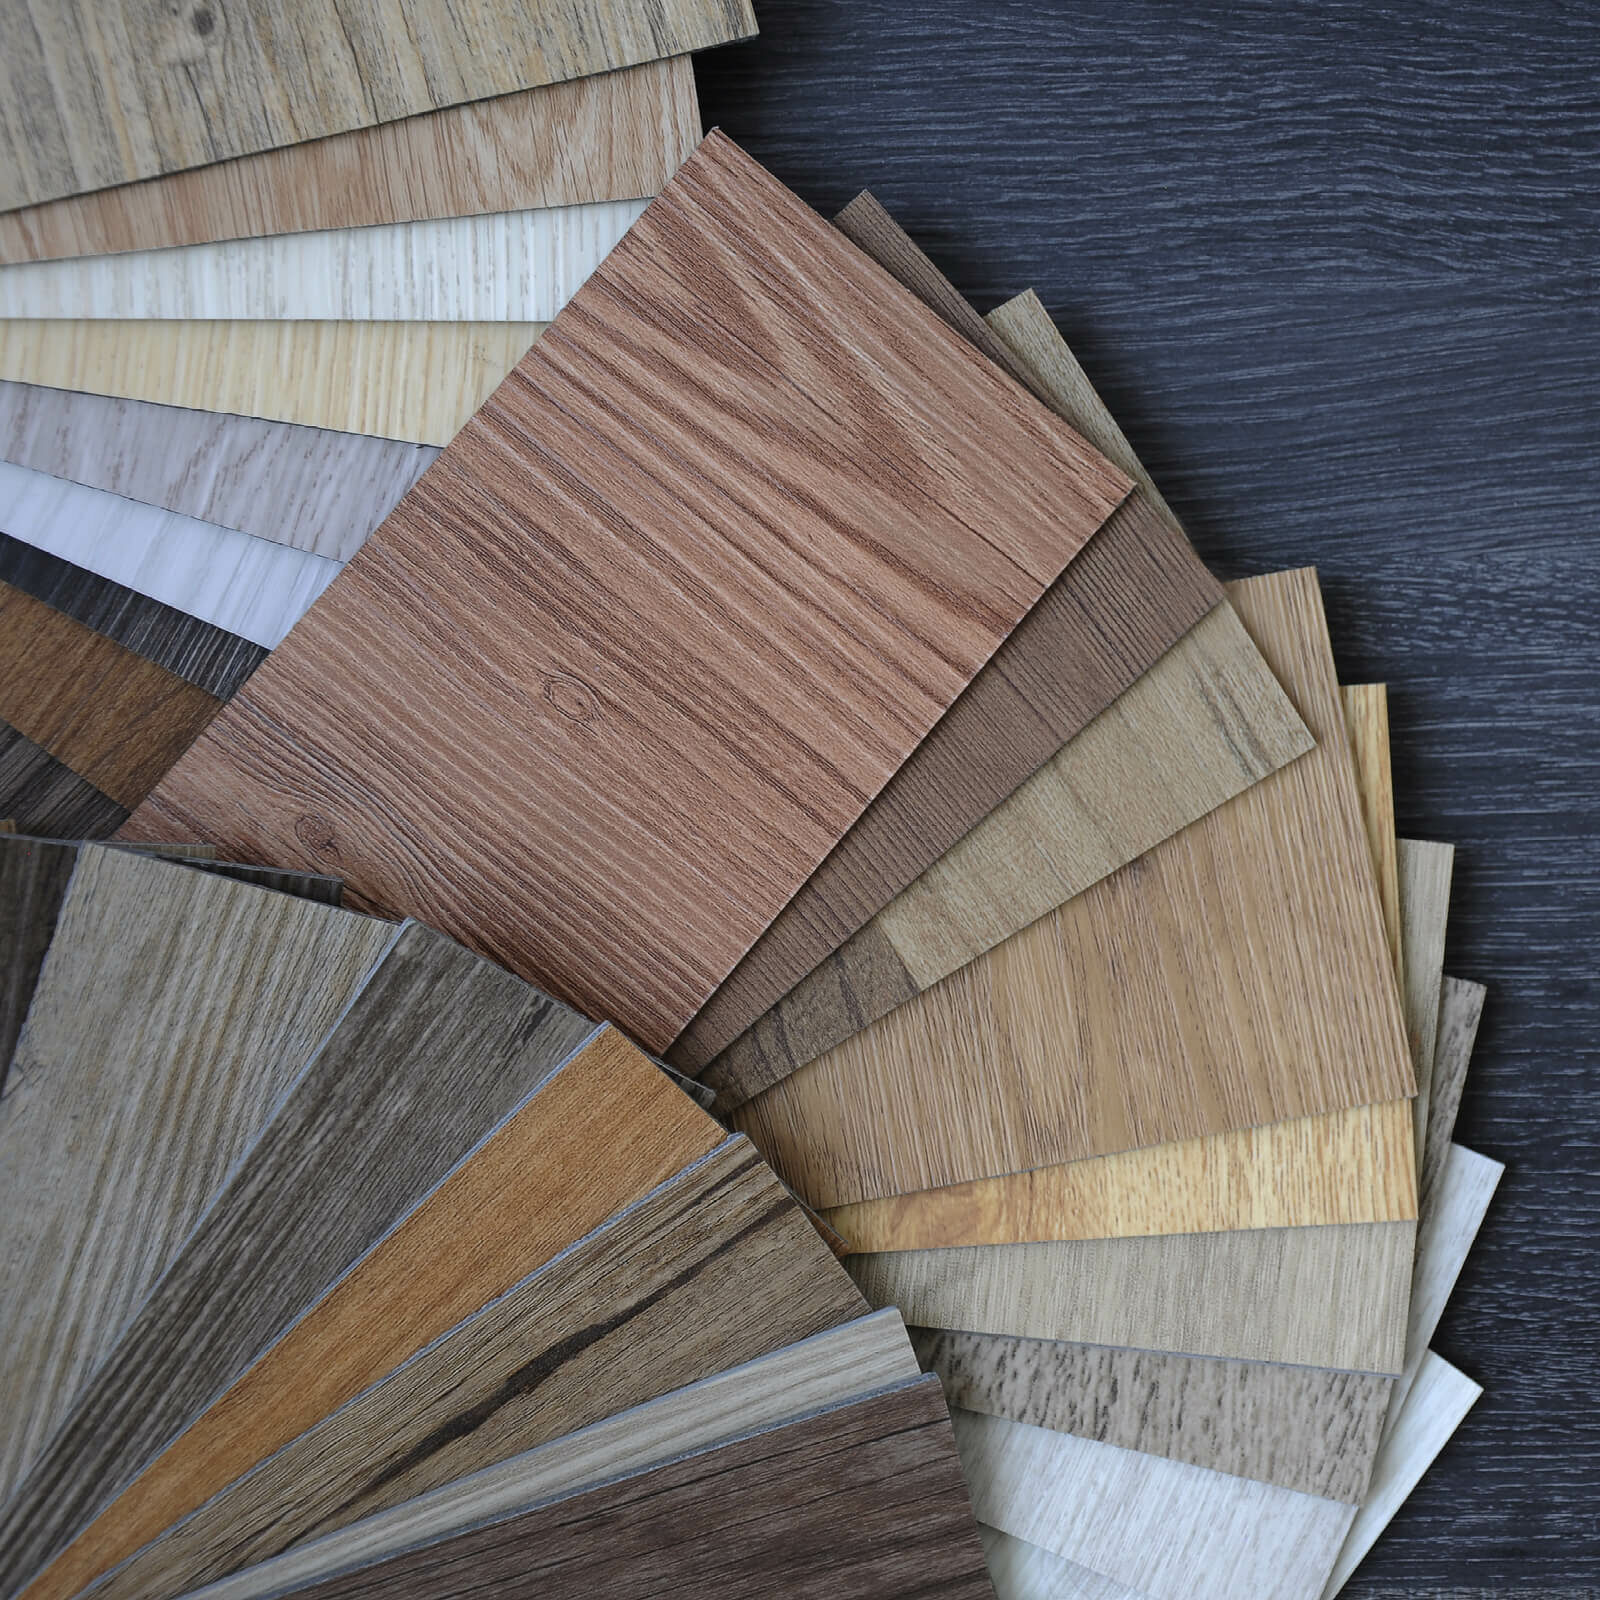 flooring samples | All Floors Design Centre